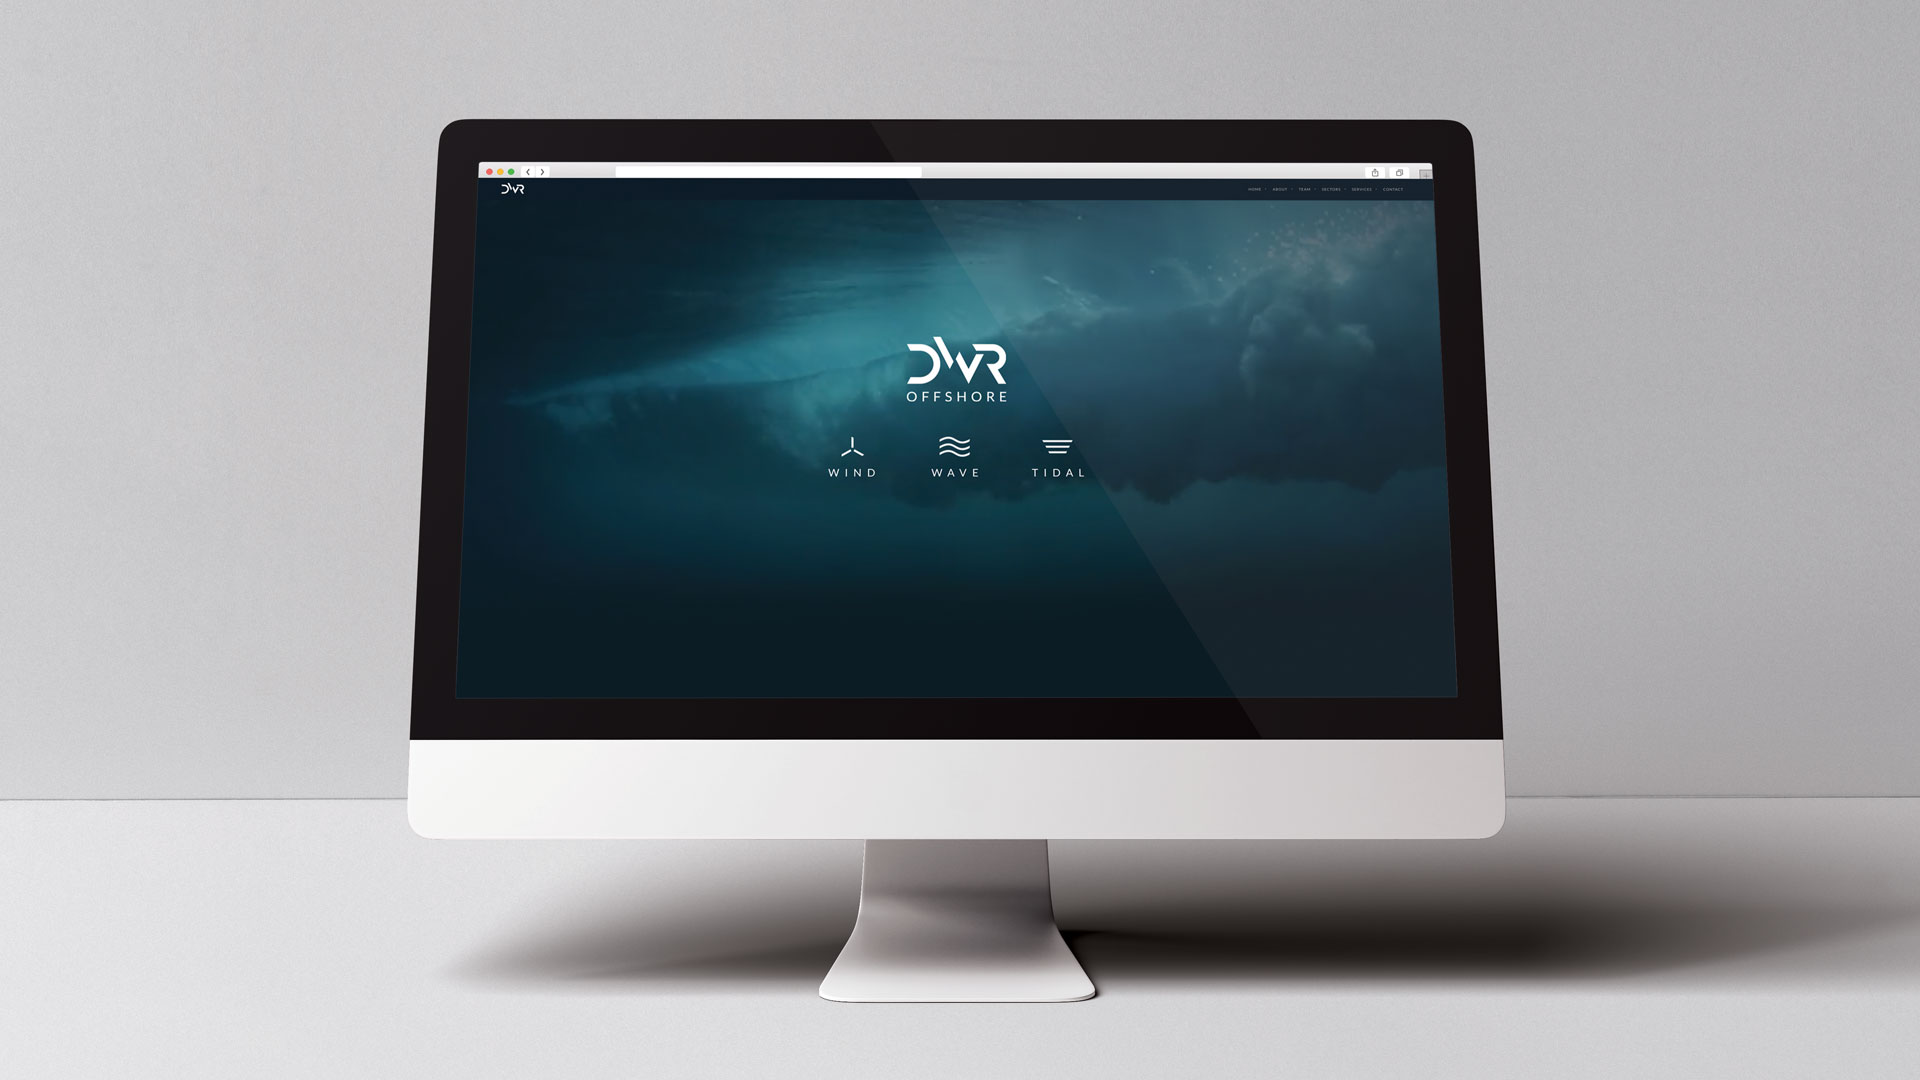 Website creation | DWR Offshore | Creative design and marketing for the marine offshore industry